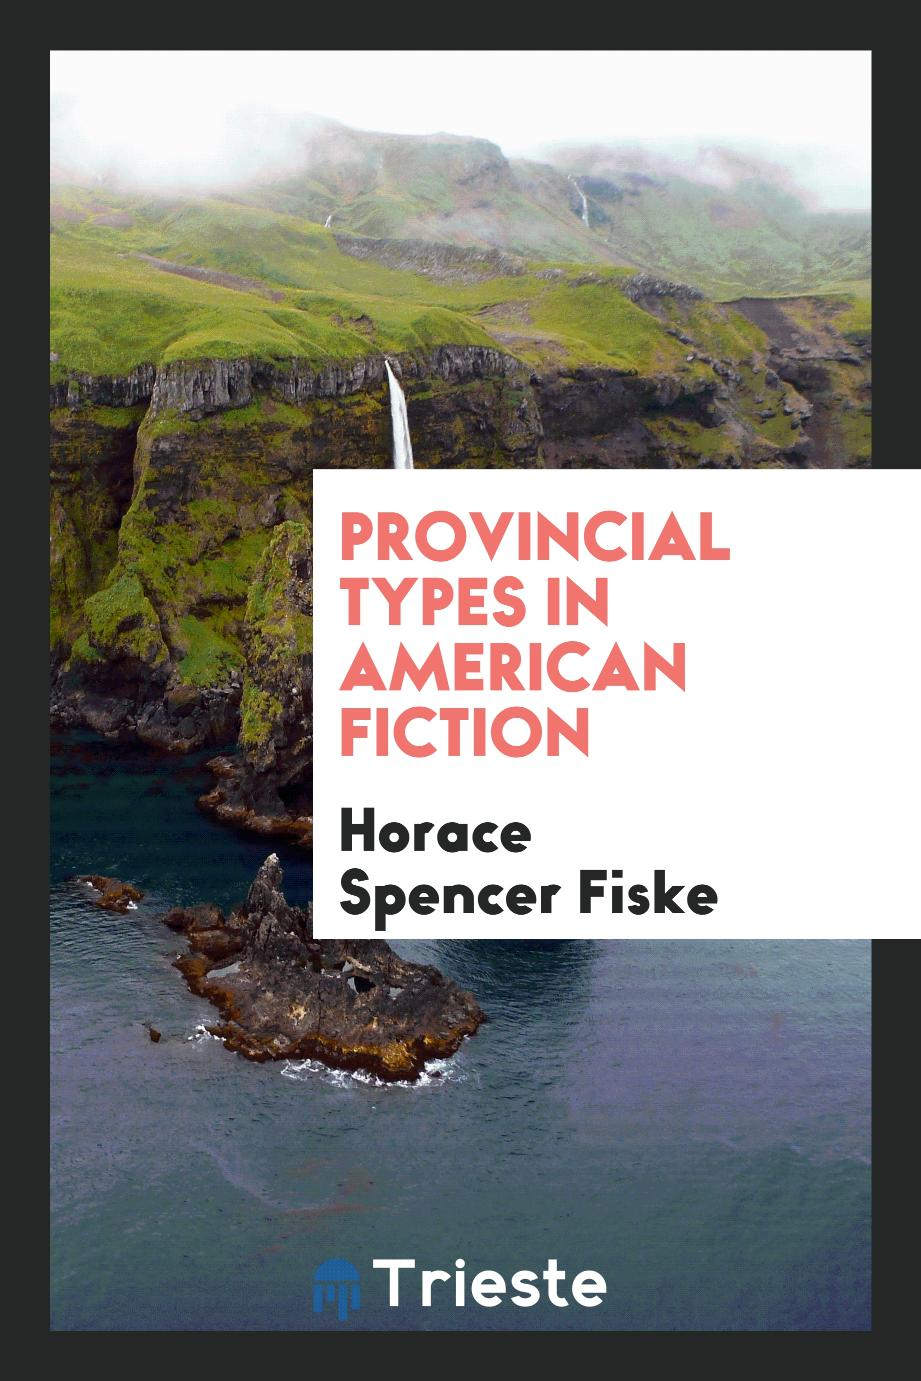 Provincial types in American fiction